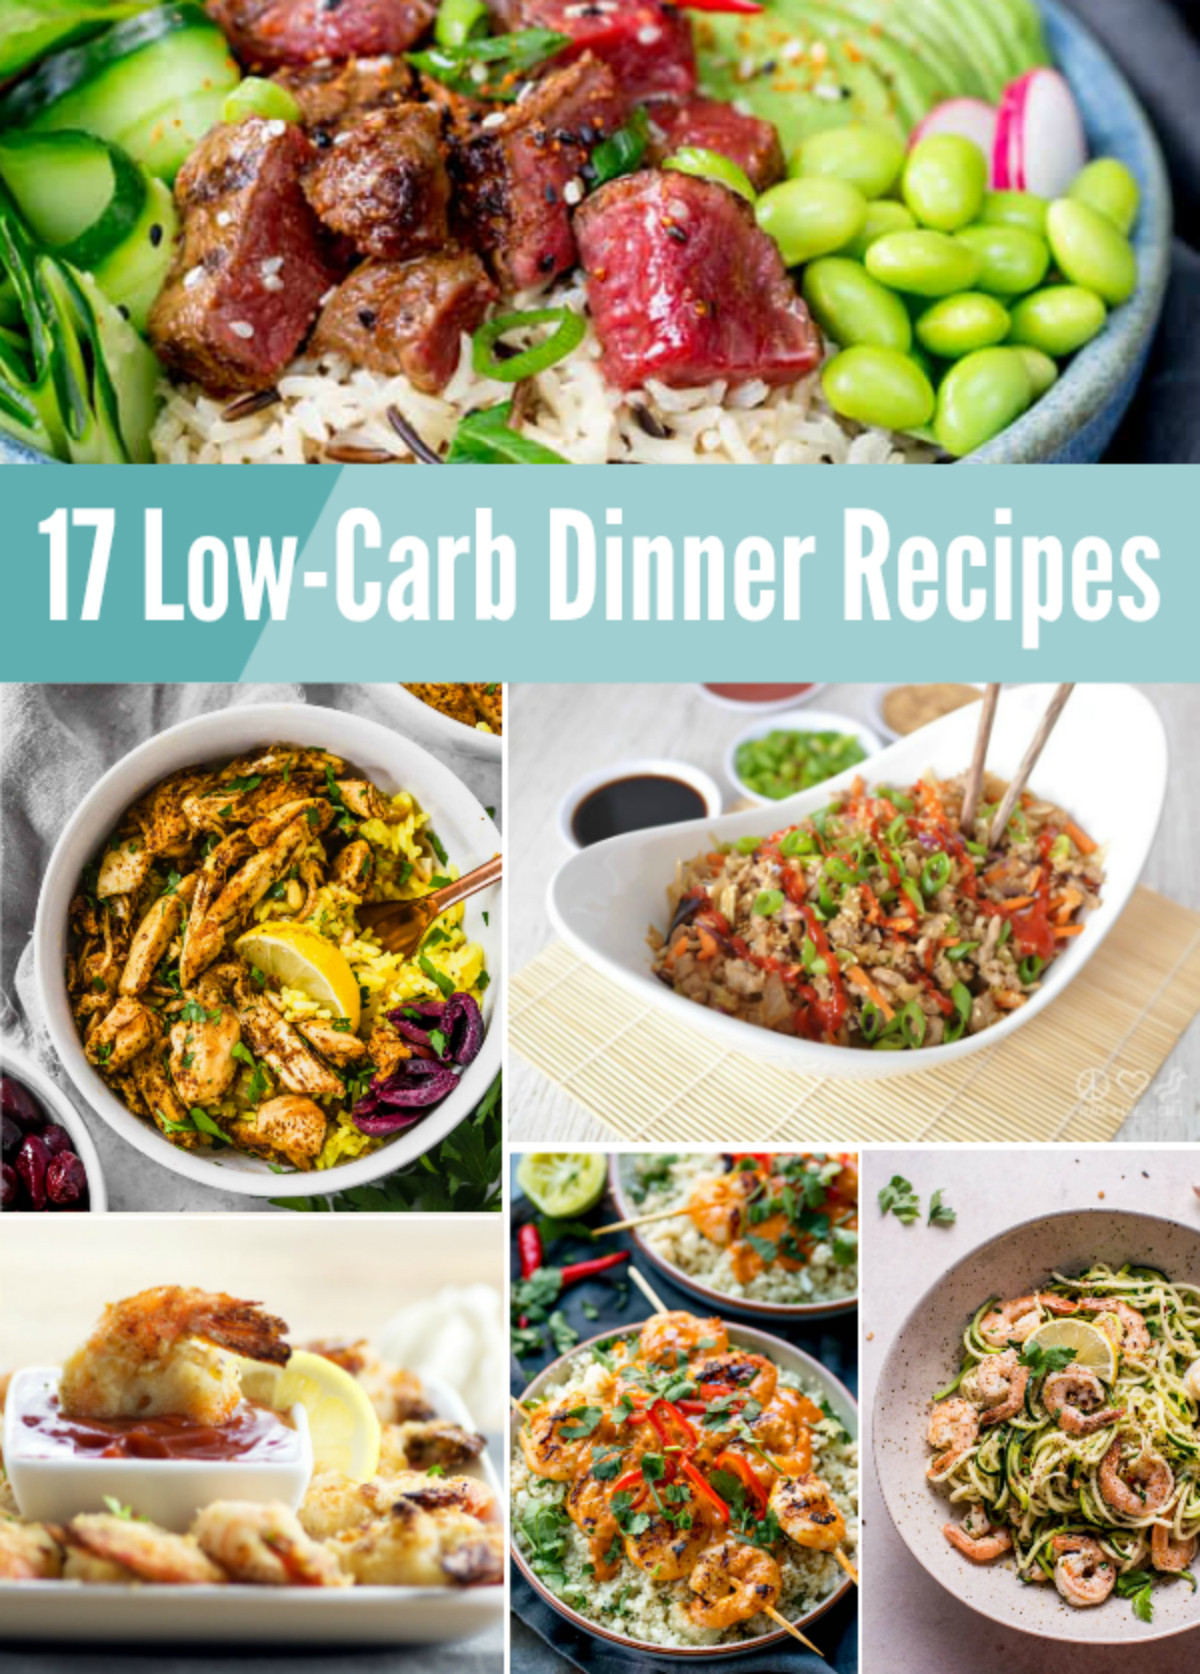 Low Carb Dinner Options  17 Low Carb Dinner Recipes from MamaMommyMom